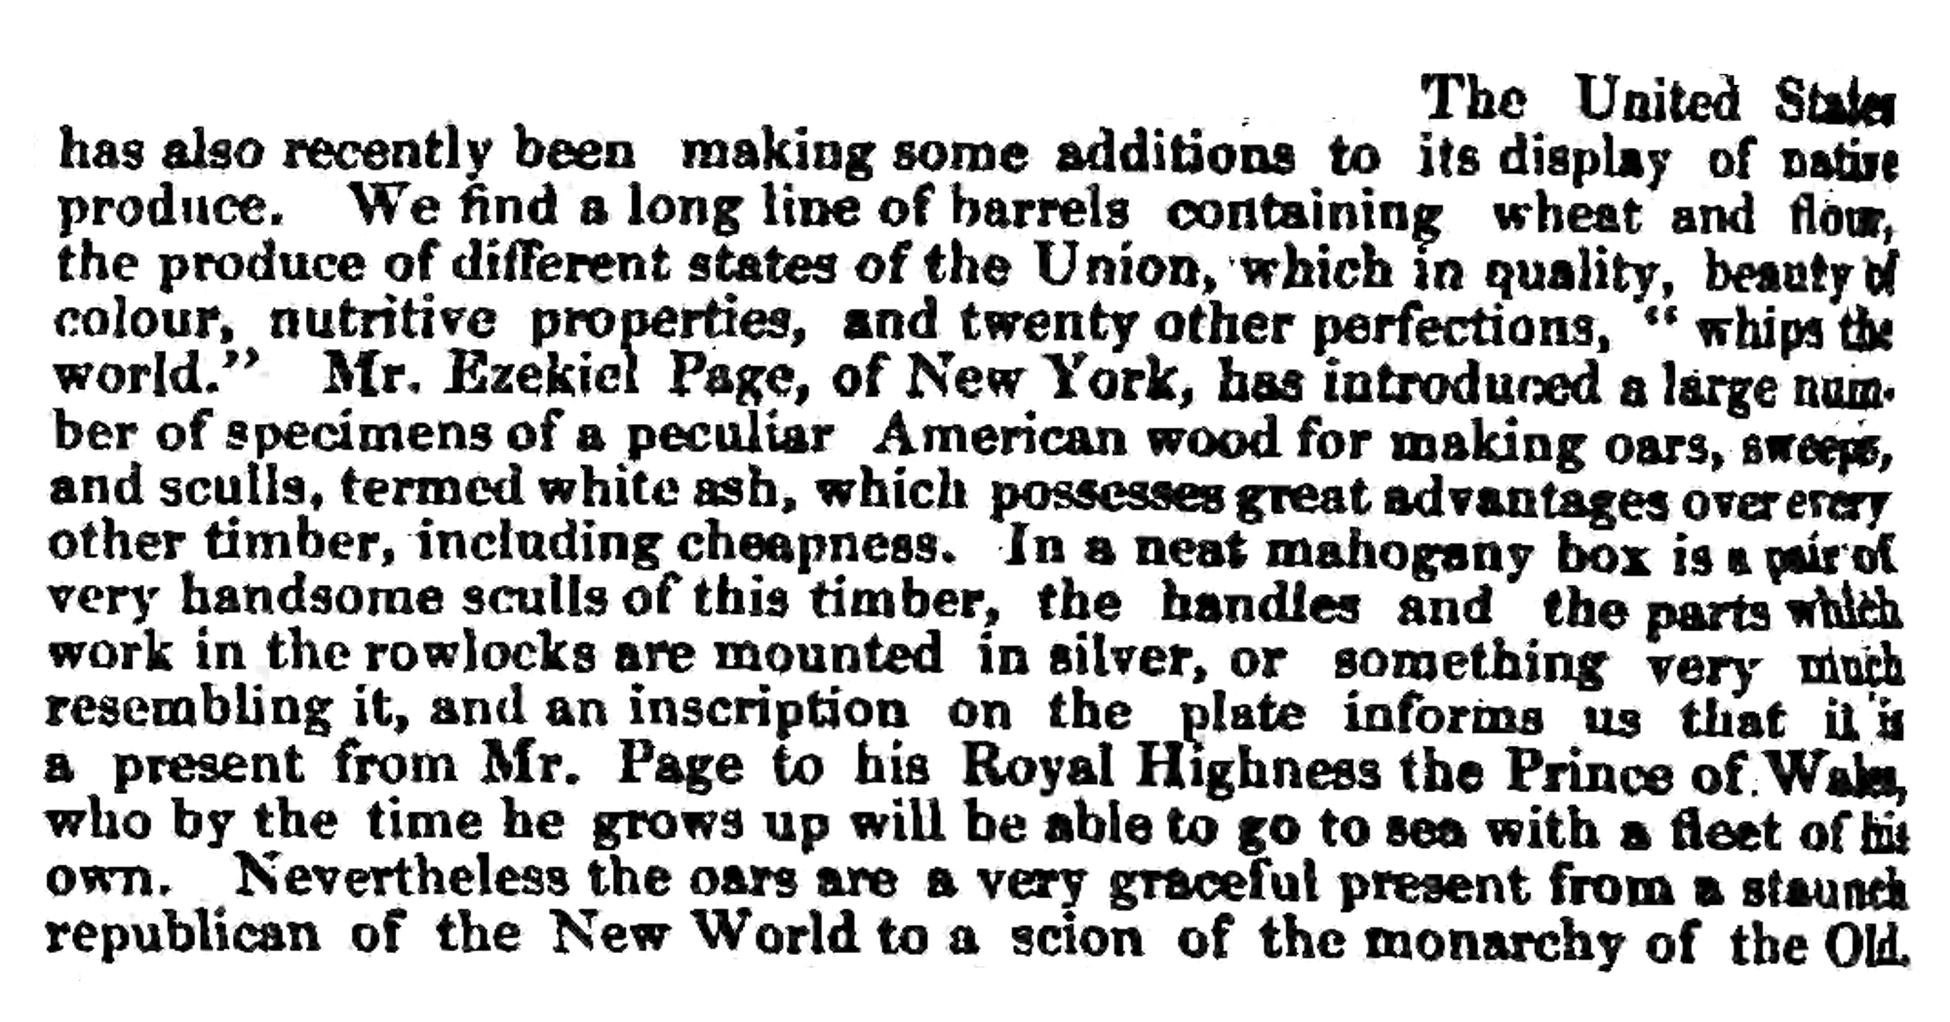 1851-08-17 The Observer (London, England) Sun Aug 17, 1851, p4